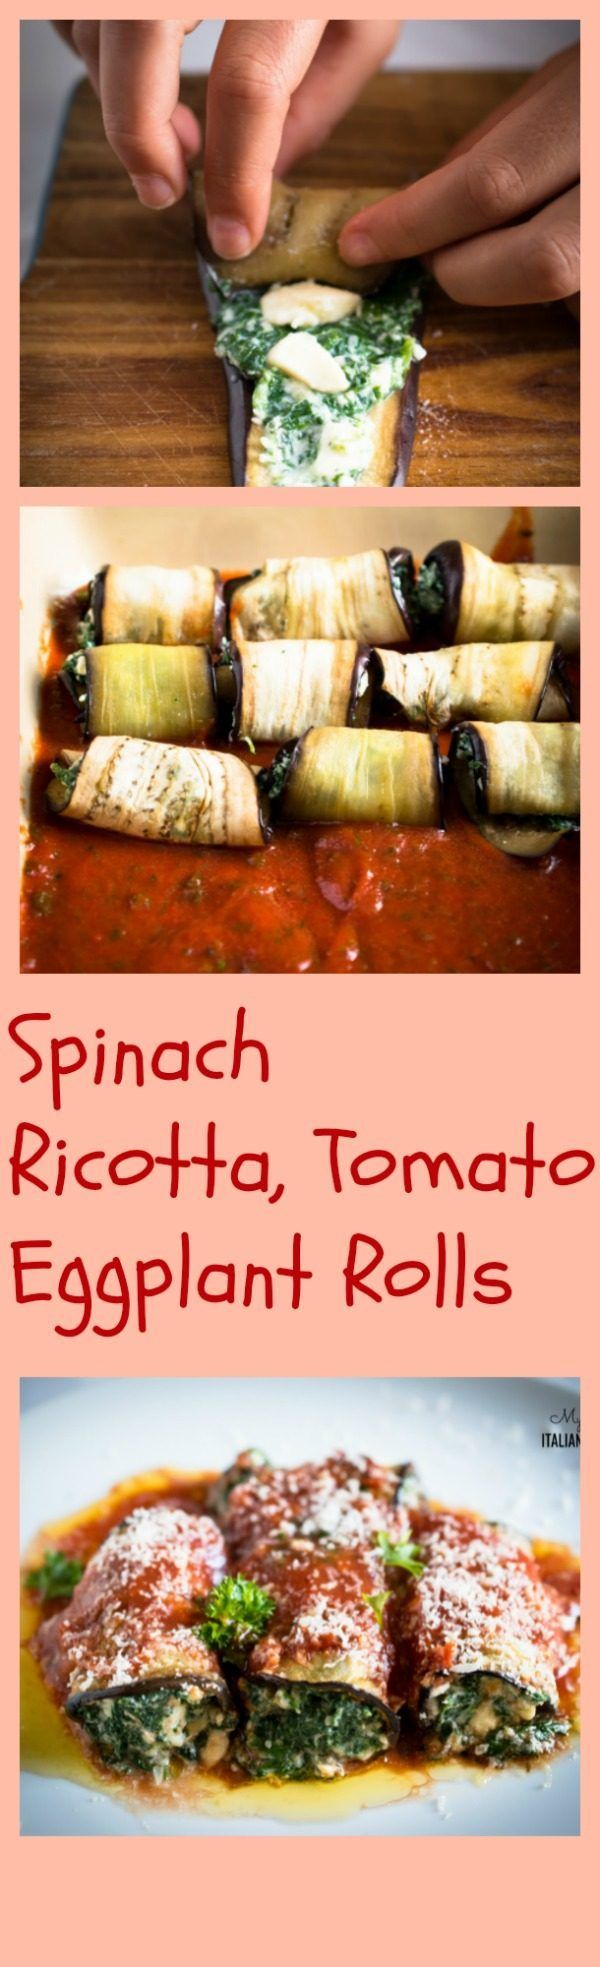 Spinach, ricotta, tomato eggplant rolls Ingredients eggplant ­ 2 large fresh spinach ­ 600 g ­ 2 cups ricotta cheese ­ 250 g ­just over 1/2 cup chopped parsley ­ 1 tbsp mozzarella cheese ­ 125 g ­just over 1 cup tomato sauce ­ 300 ml ­ 10 fluid oz parmesan cheese grated ­ 60 g ­5/8 cup garlic ­ 1 clove olive oil salt and pepper